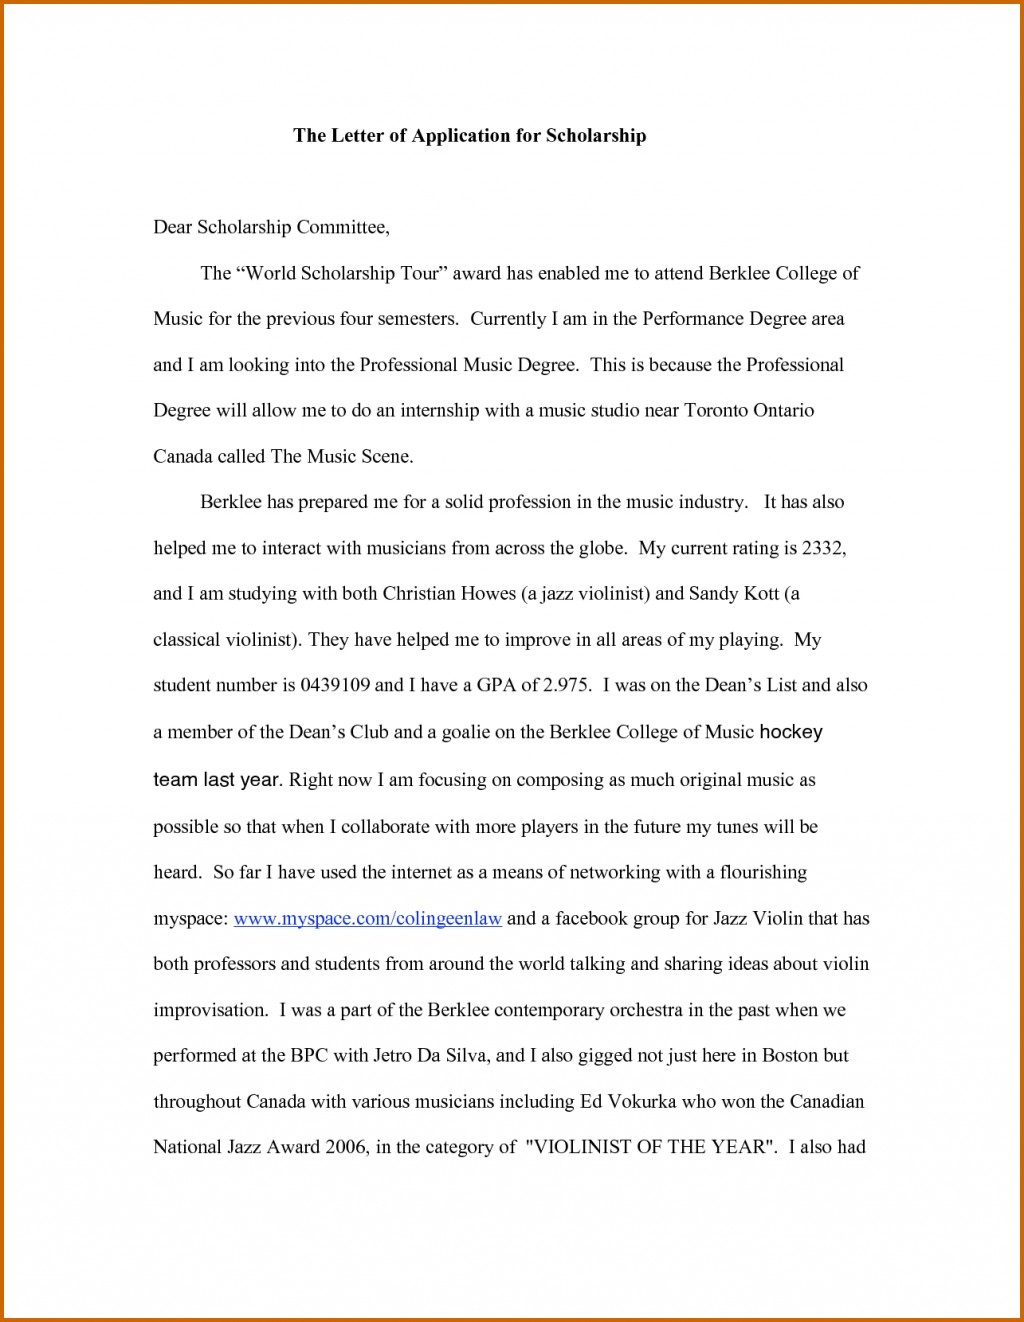 009 Essay Example How To Writepplication For Scholarship What Awesome Write A That Stands Out In About Yourself Good Large